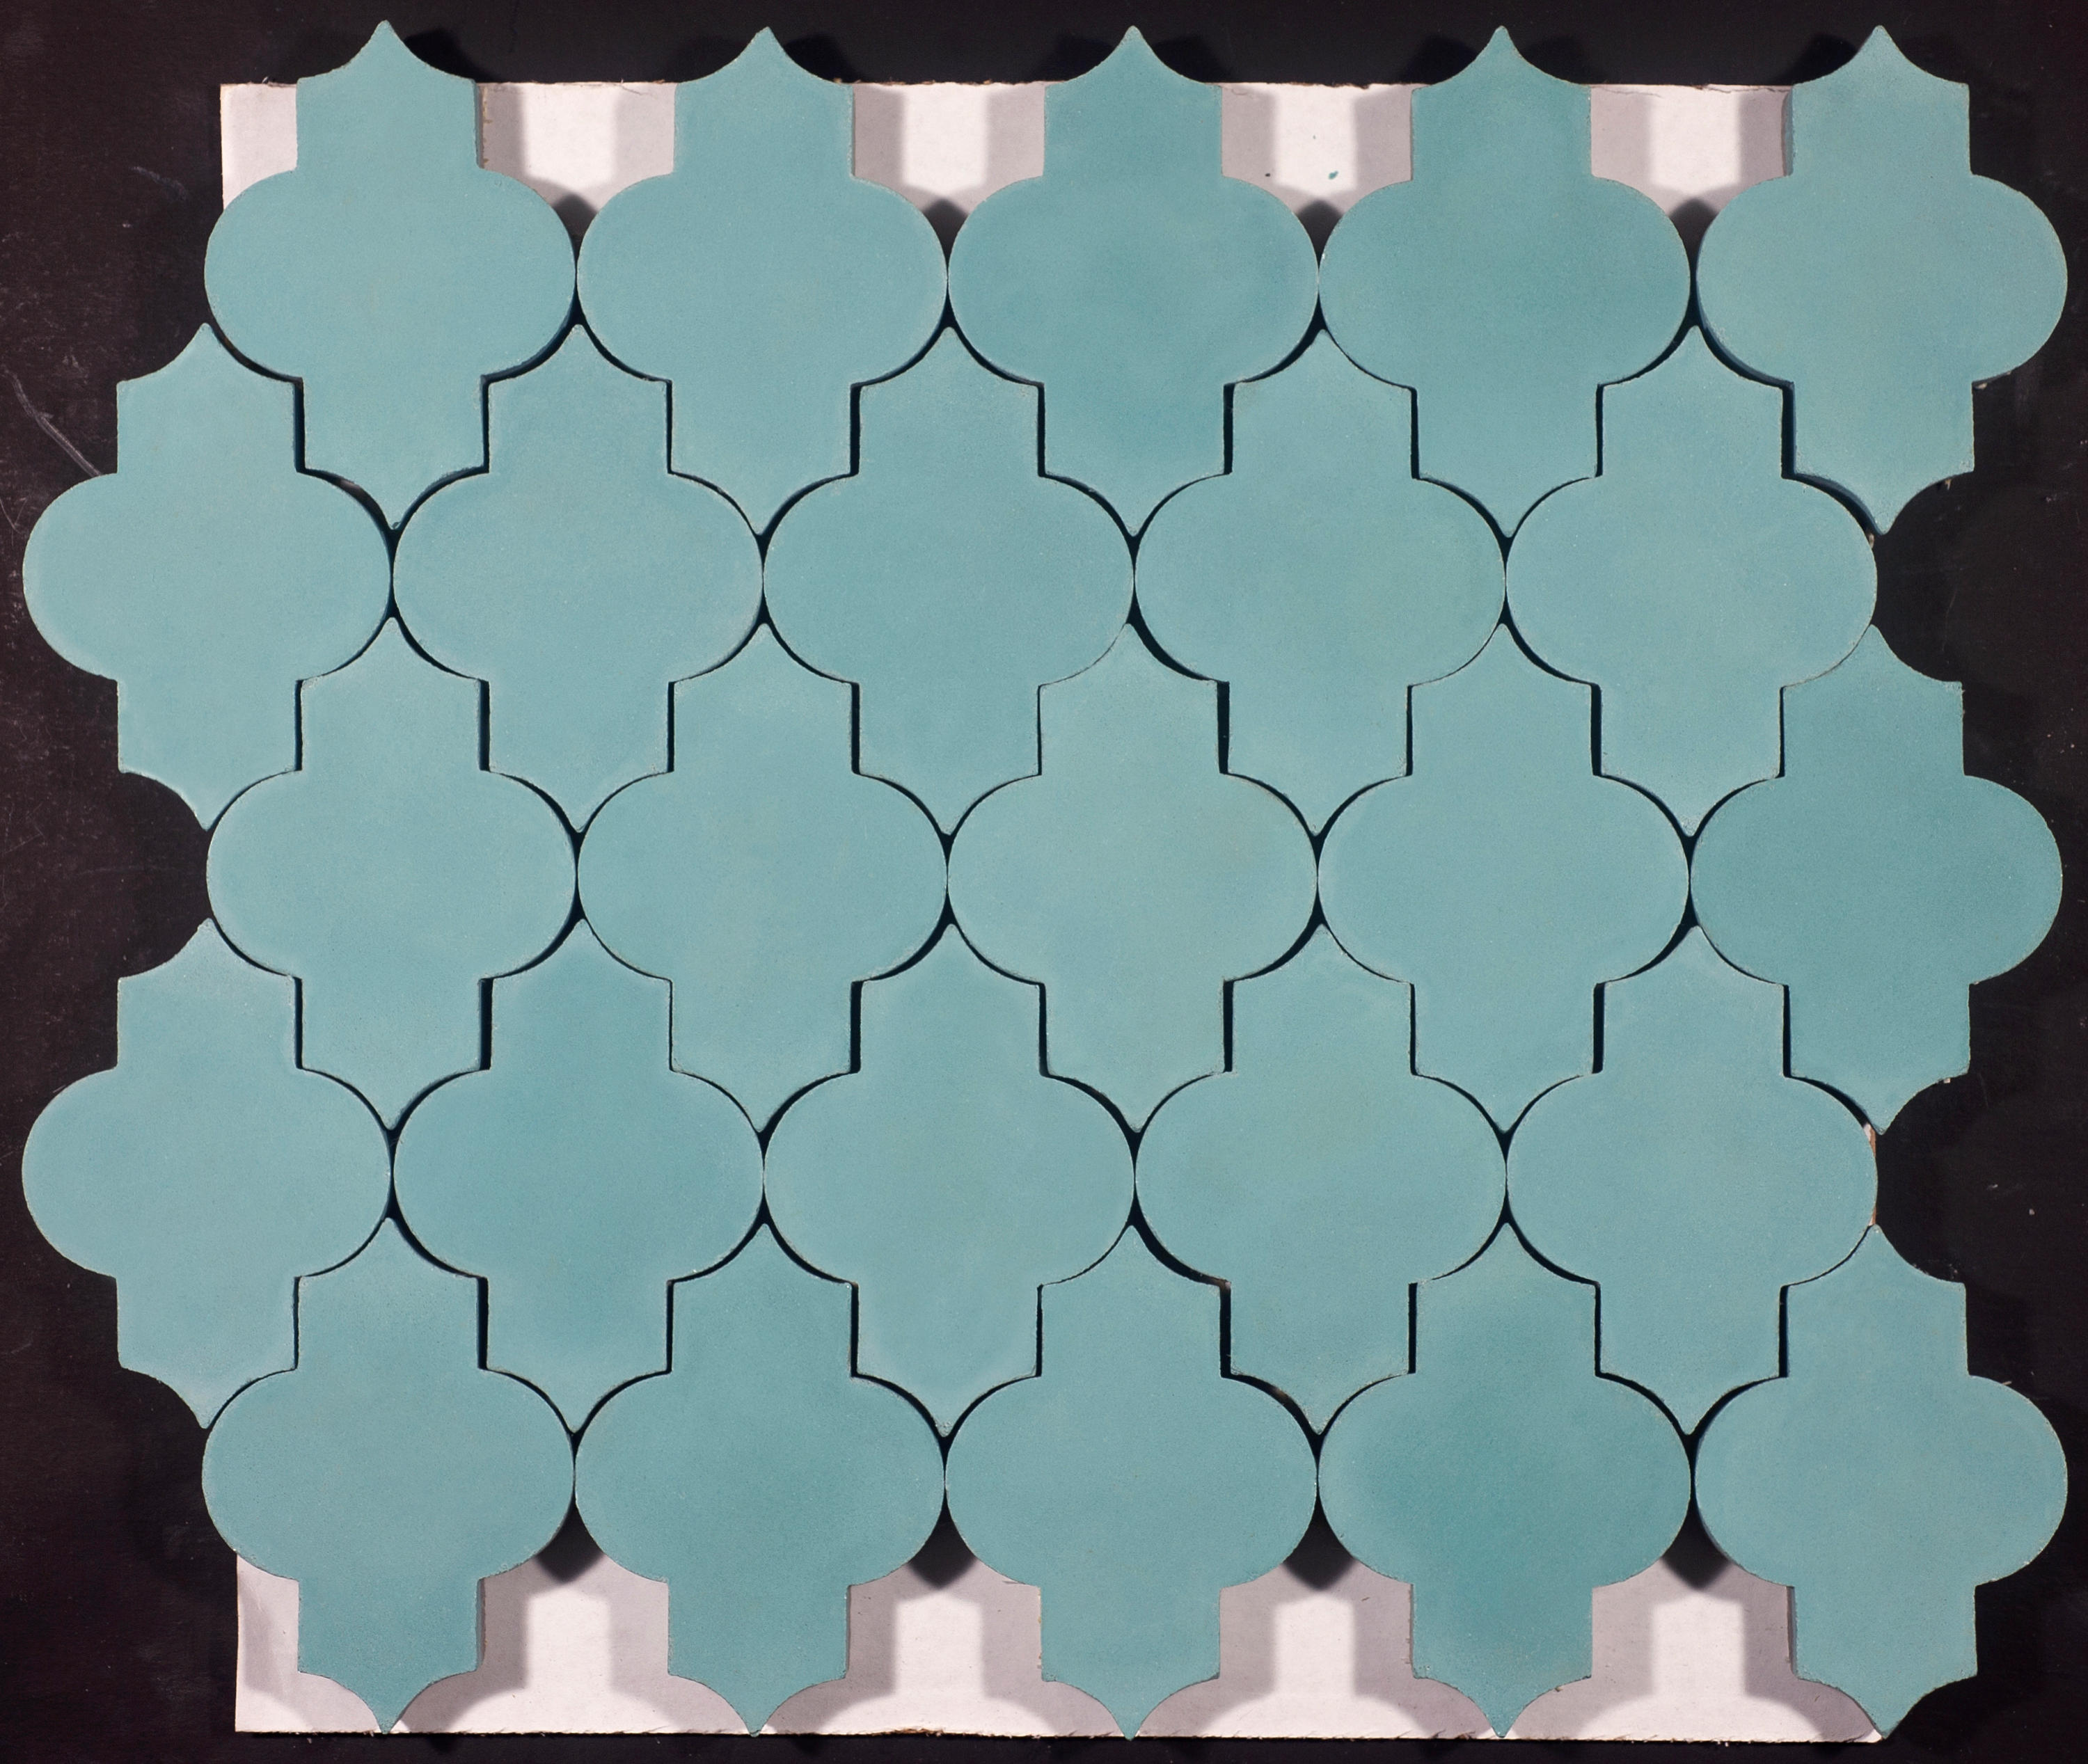 Trellis aqua floor tiles from granada tile architonic trellis aqua by granada tile floor tiles doublecrazyfo Gallery